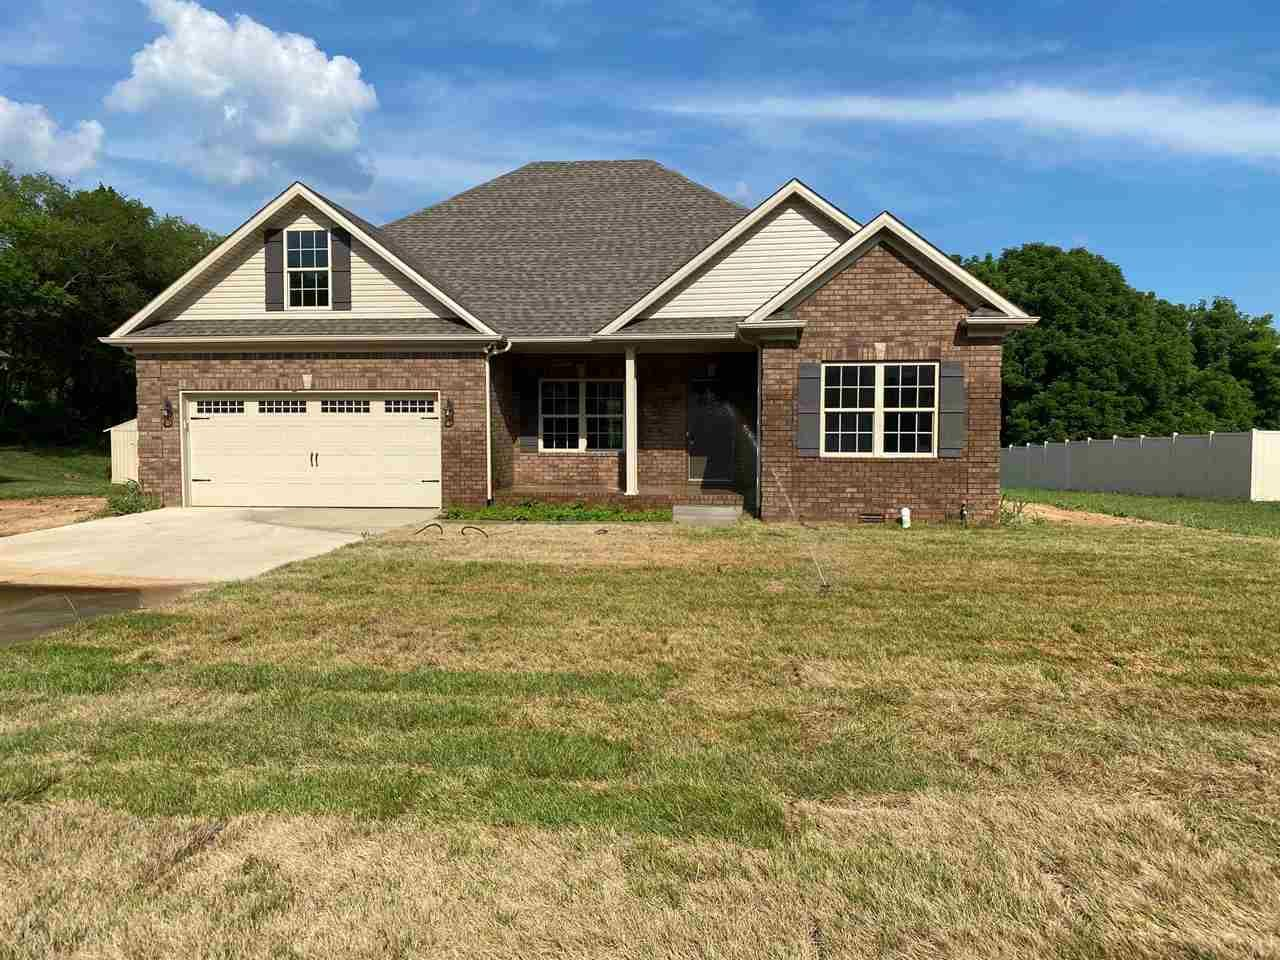 276 Leon Dr, Bowling Green, KY 42104 - #: 20200609